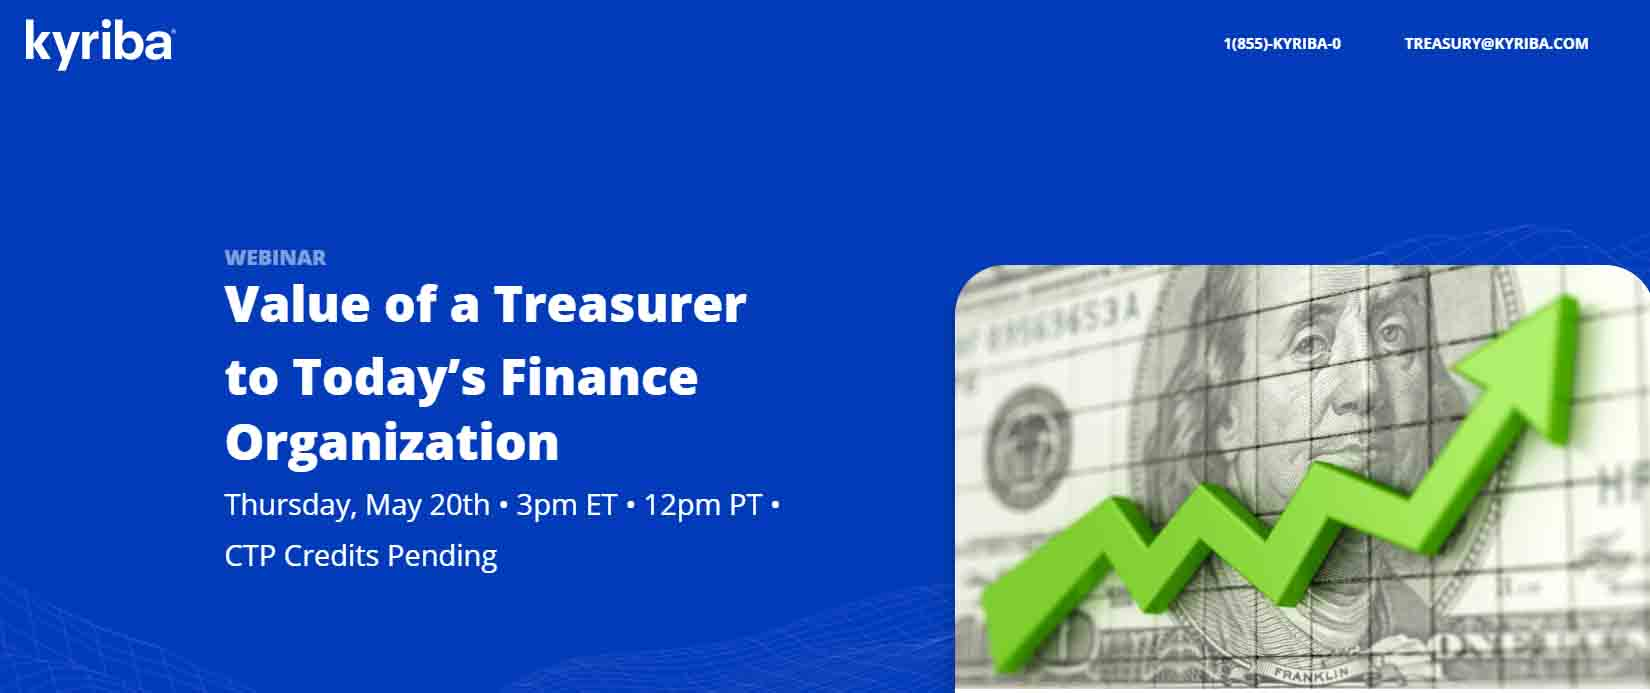 What Value Does a Treasurer Add to Today's Organizations?